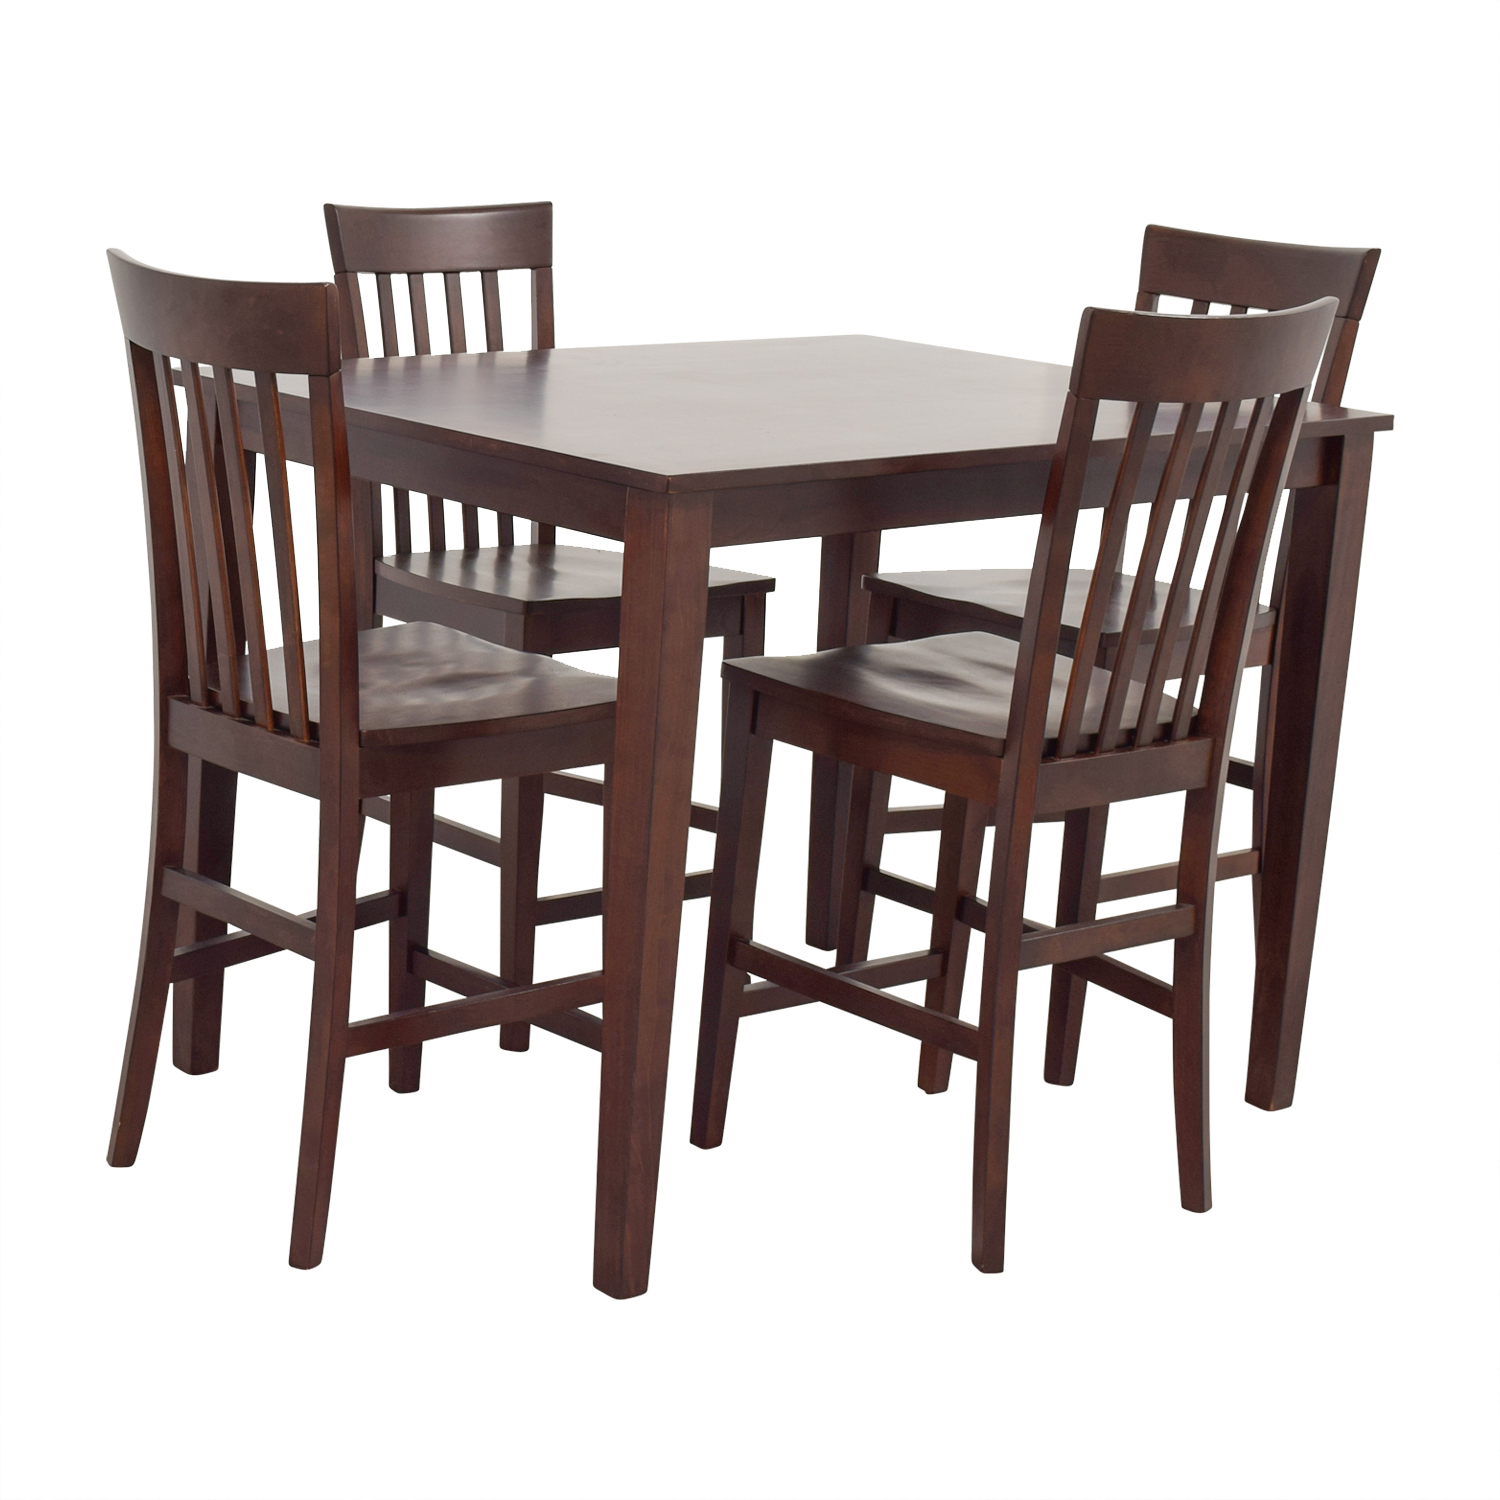 Raymour and Flanigan Raymour & Flanigan Bellanest Counter Height Dining Set Dining Sets